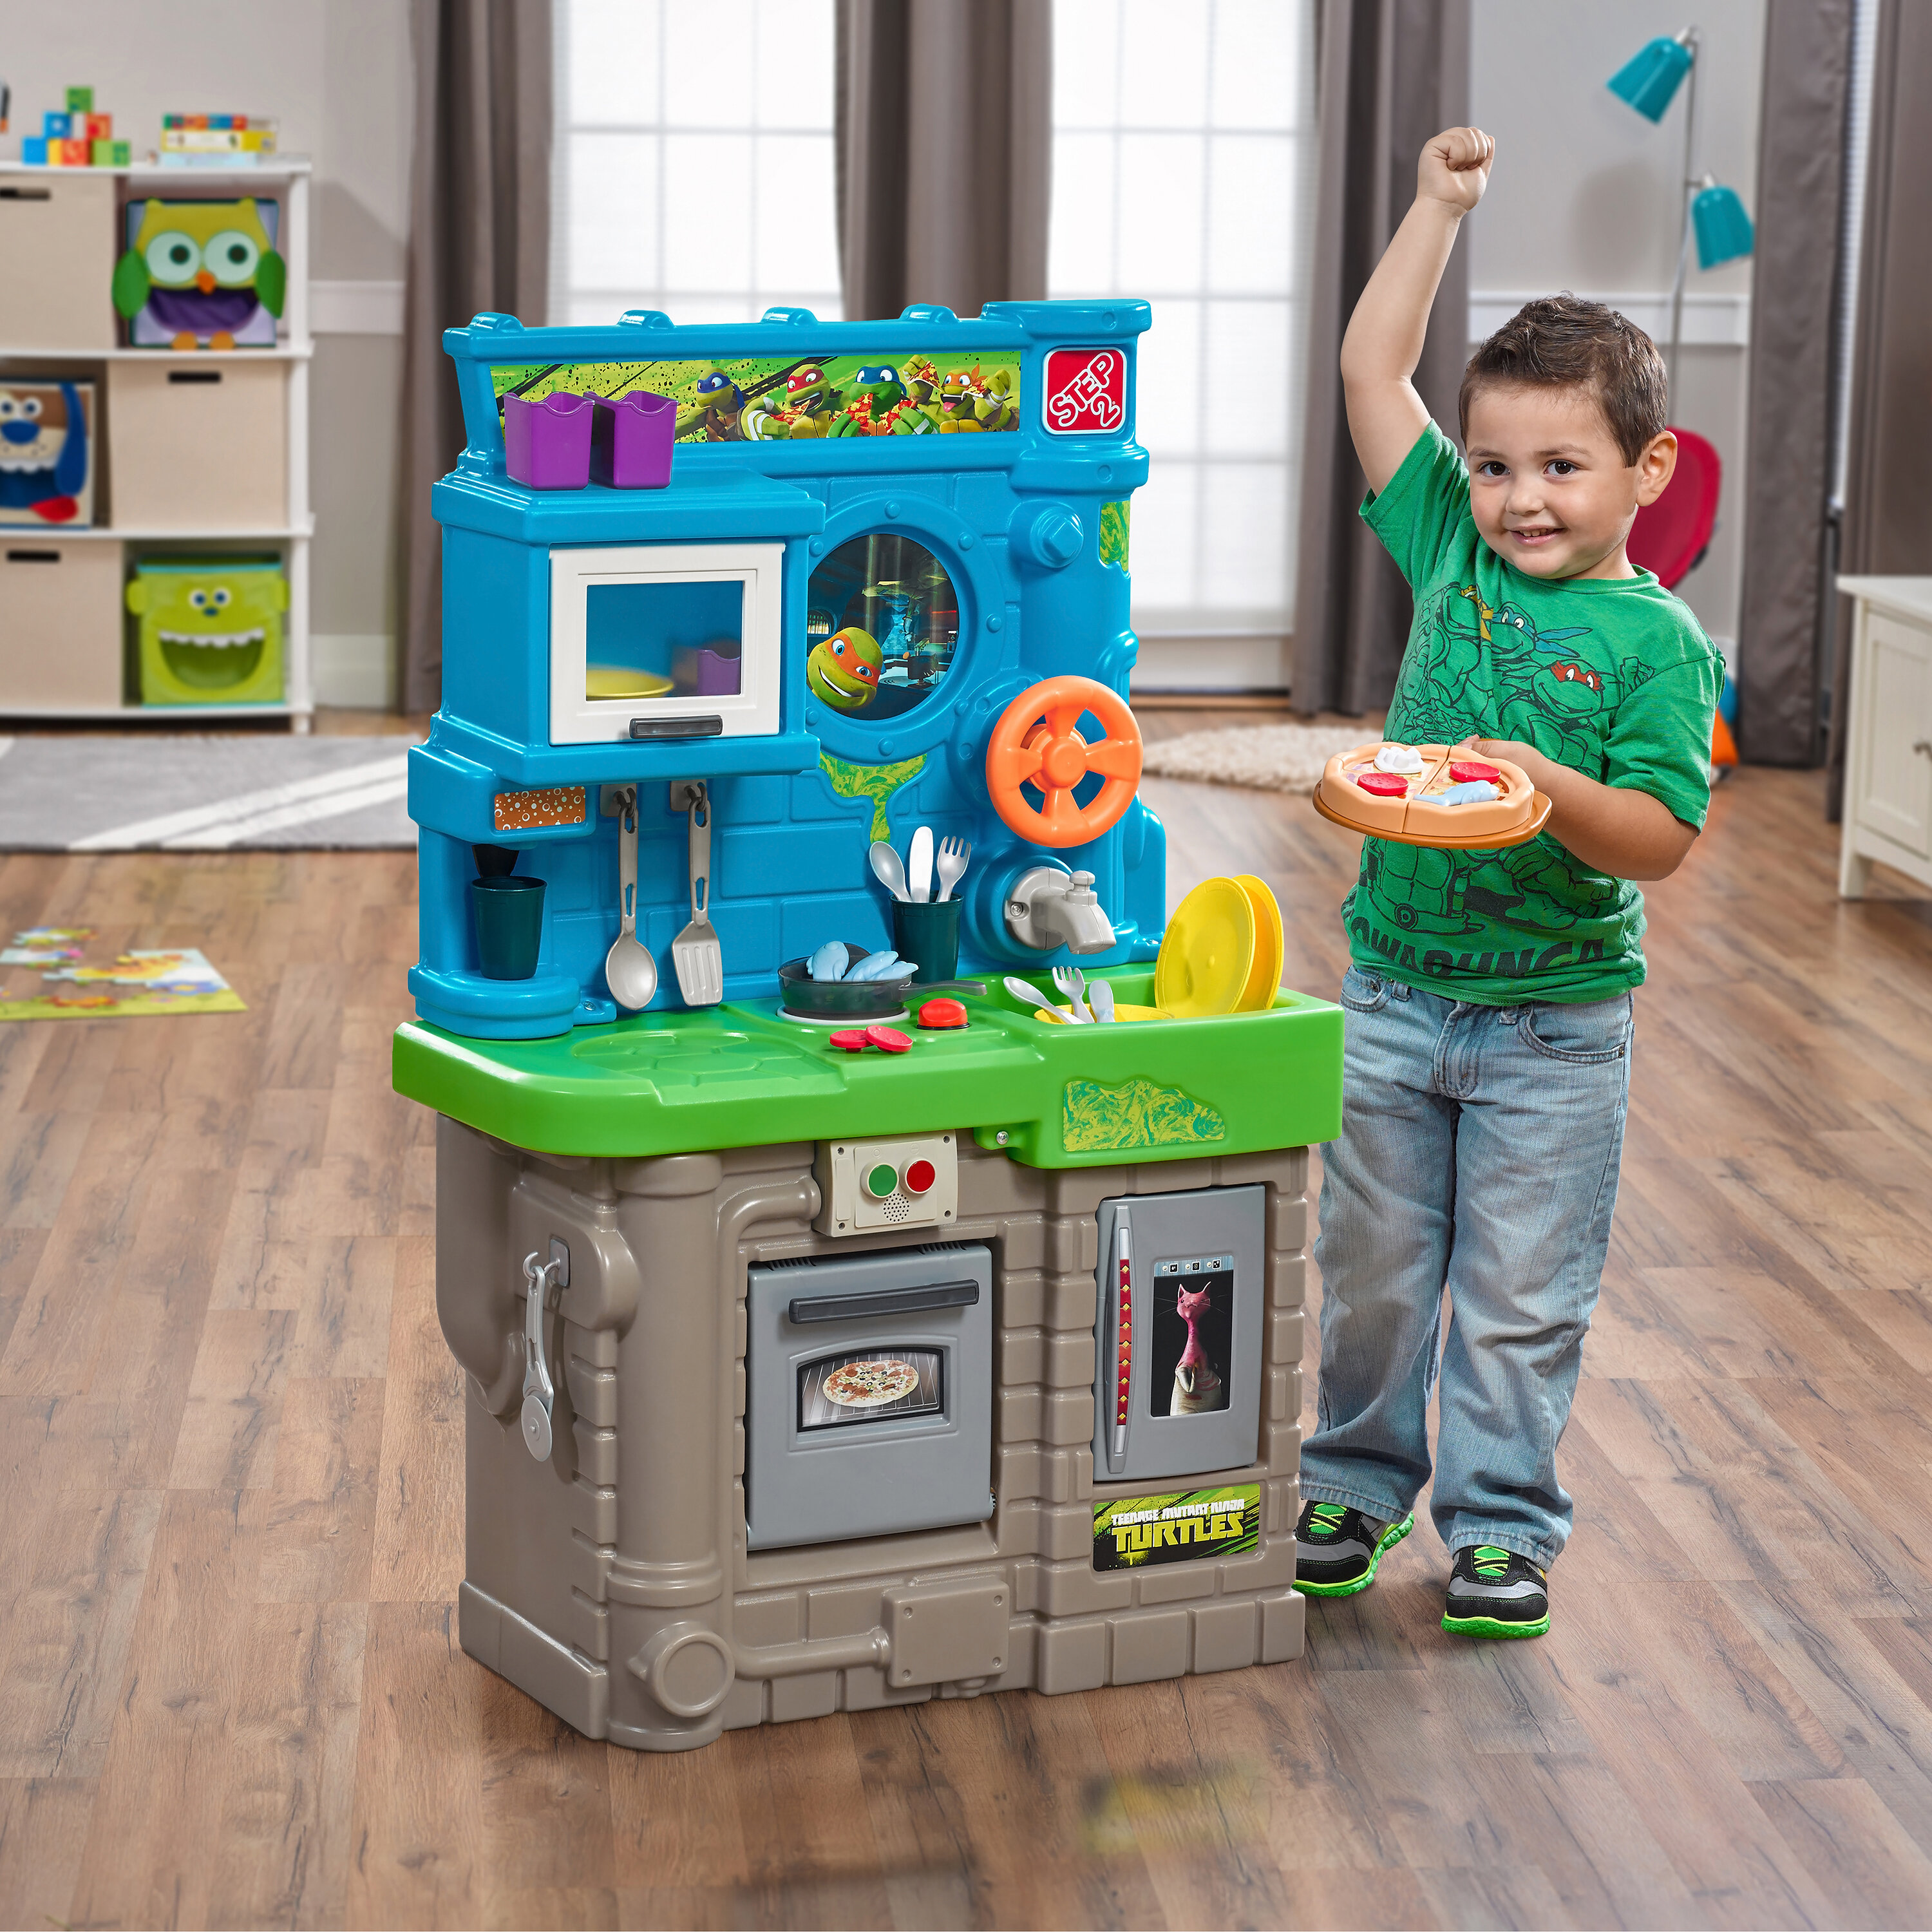 Step2 Teenage Mutant Ninja Turtle Kitchen Set & Reviews | Wayfair